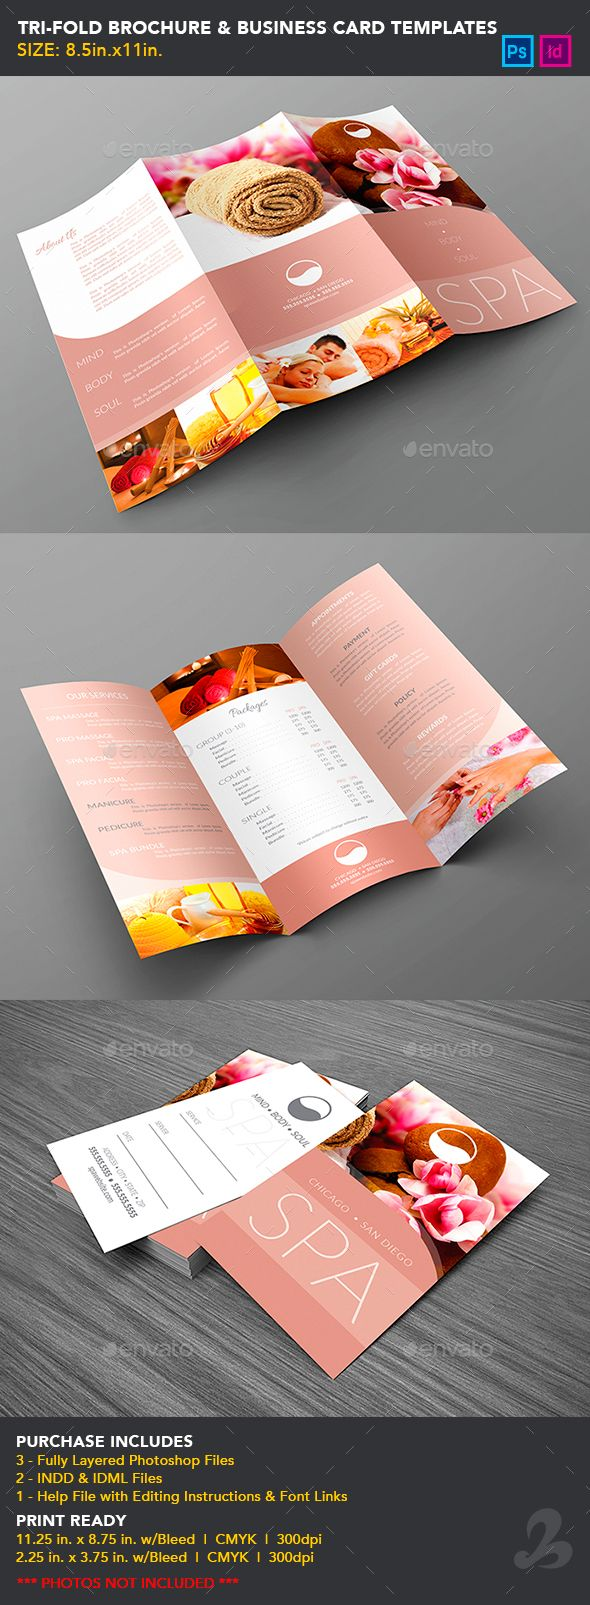 17 best Tri Fold Brochure Inspiration images on Pinterest | Page ...